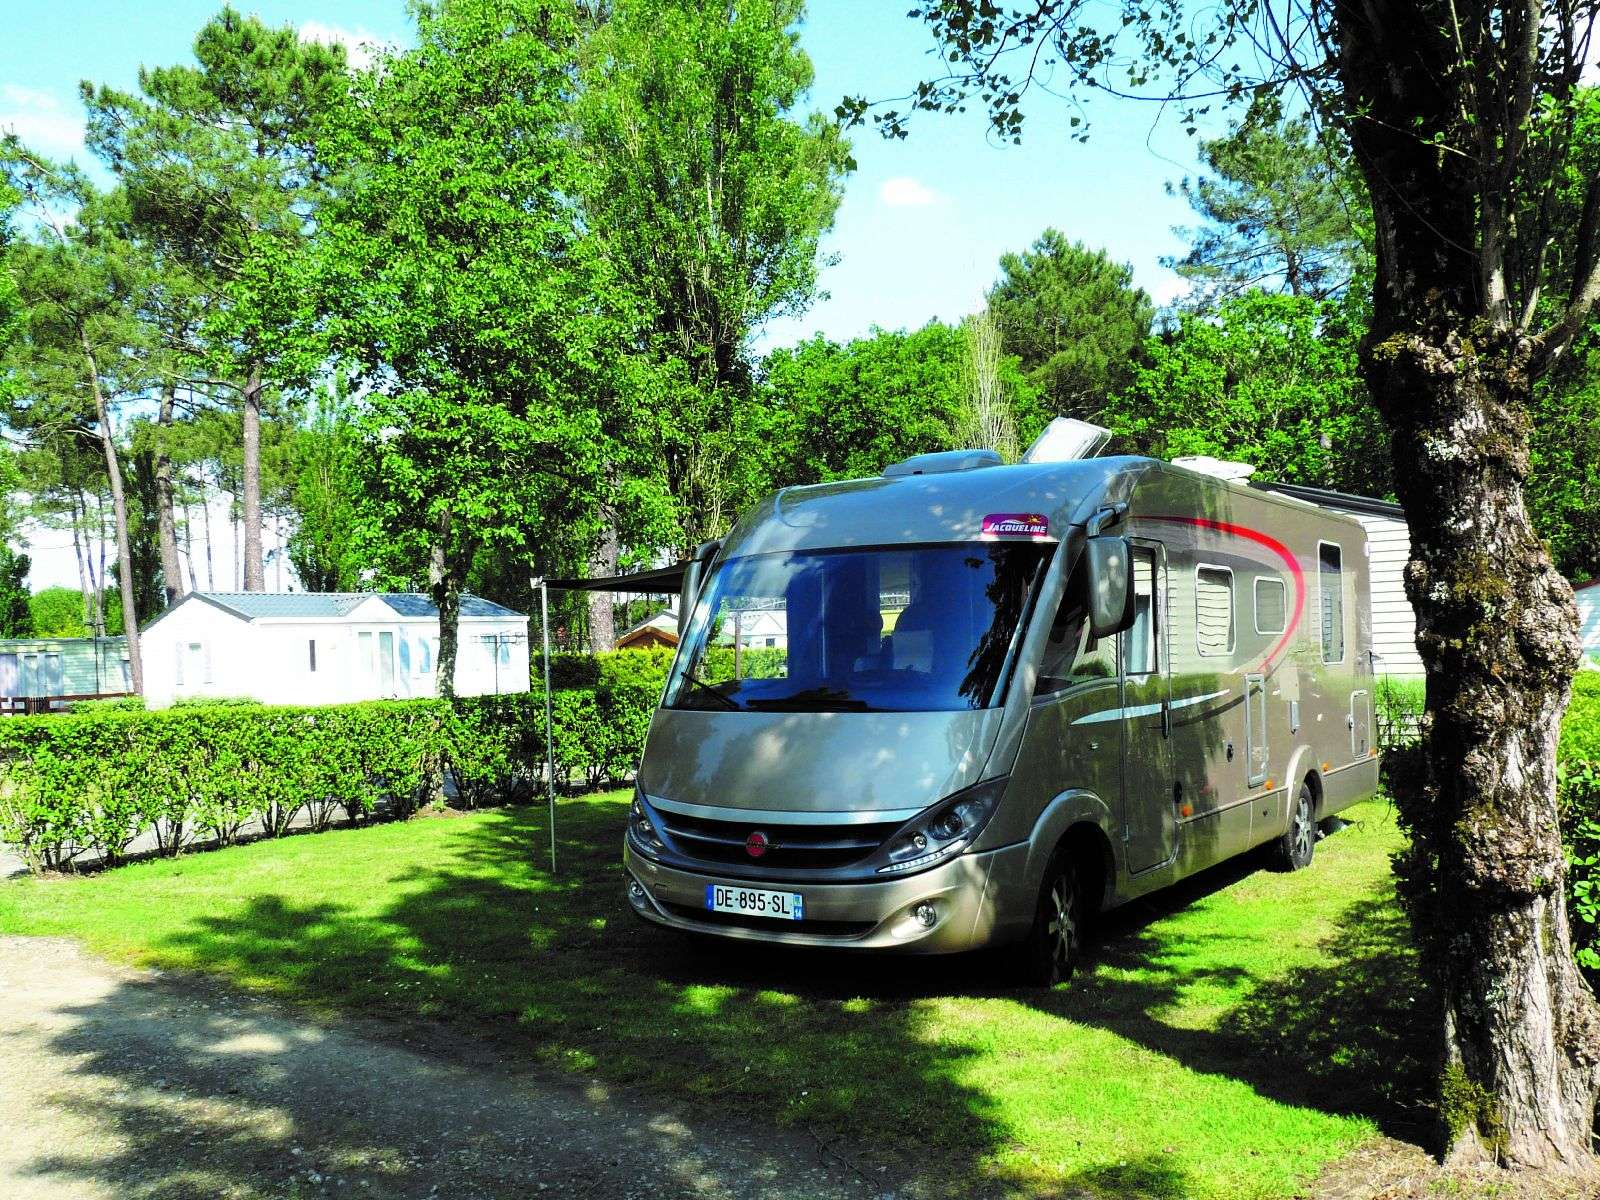 emplacement camping car au camping Saint Laurent à Ploemel